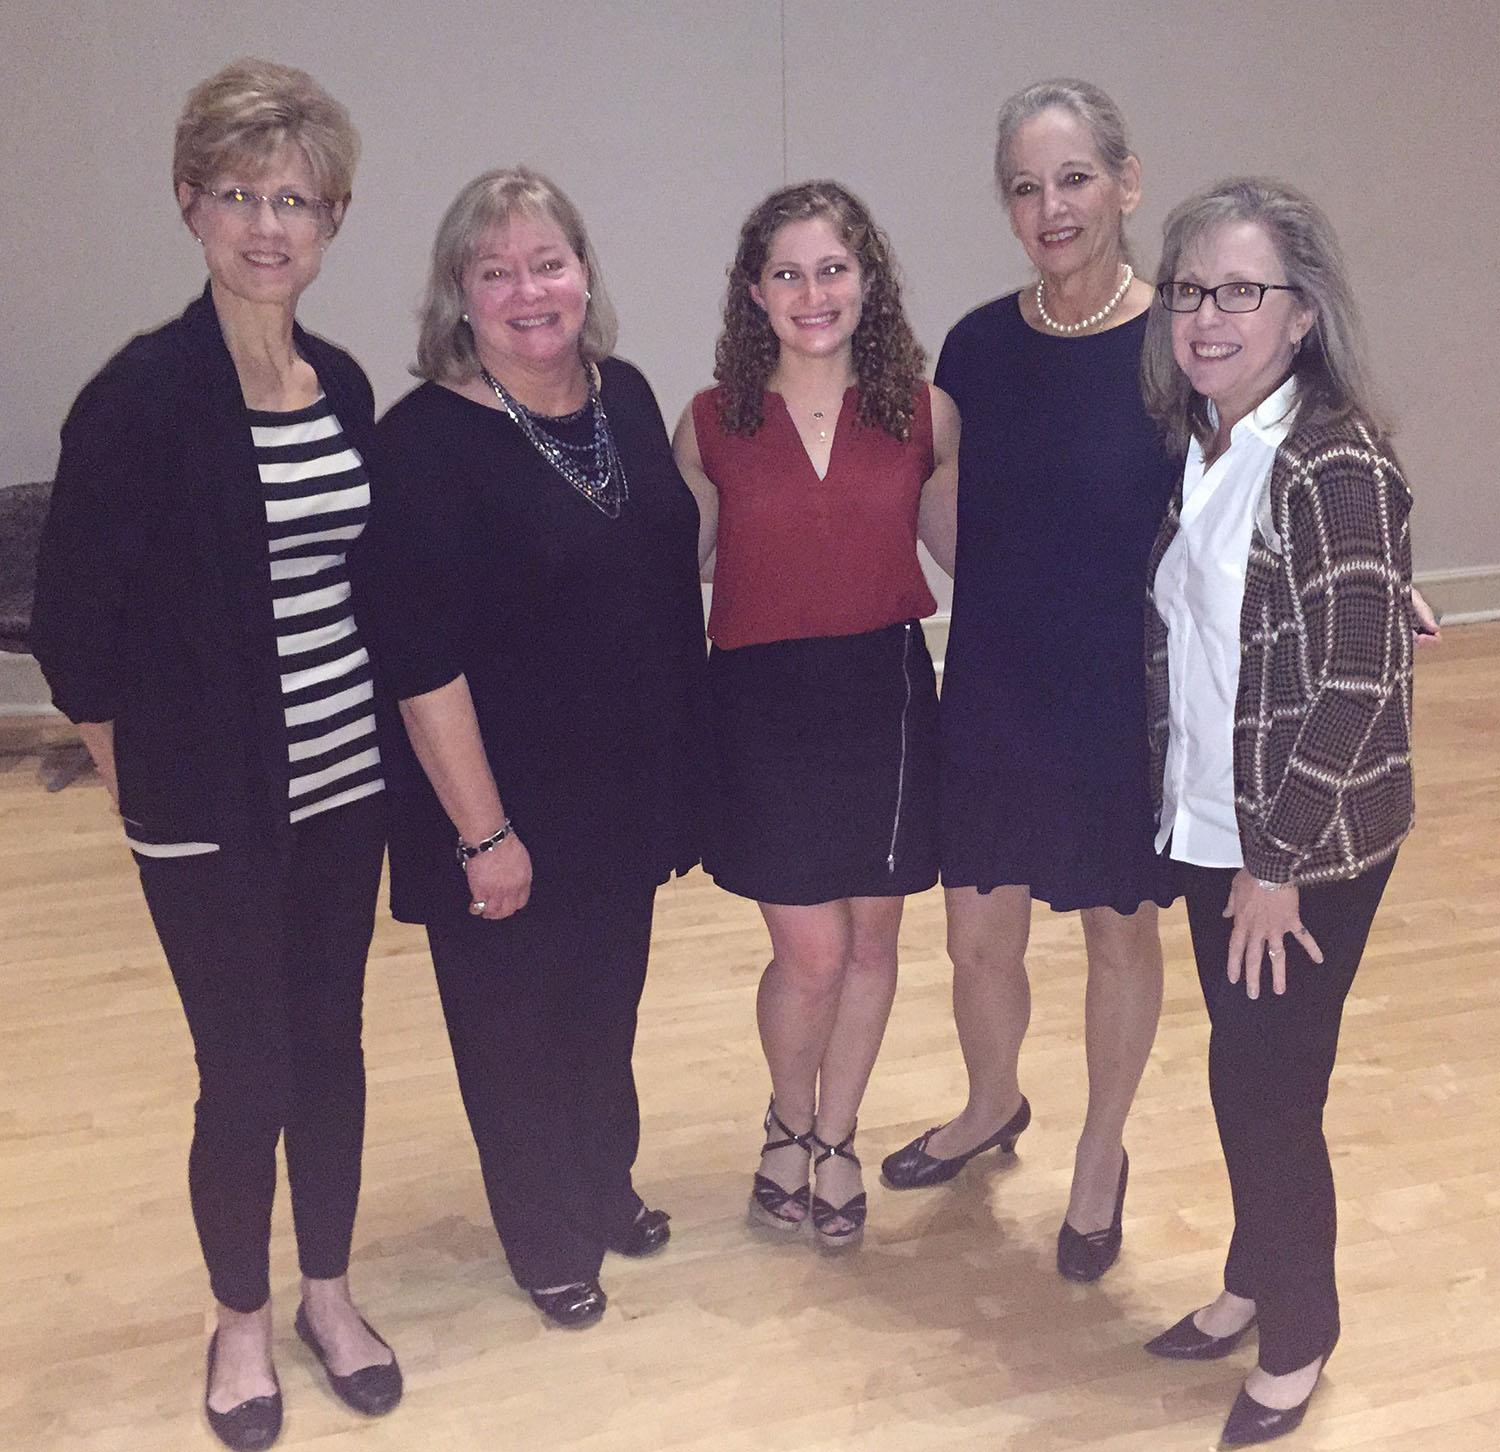 Assistant Professor of Professional Practice Sharon Canclini (far right), Assistant Professor of Professional Practice Marie Stark (right), nursing student Rachel Rudberg (middle), speaker Dr. Rachel Adatto (left) and Associate Dean for Nursing Suzy Lockwood (far left) pose for a photo at the event